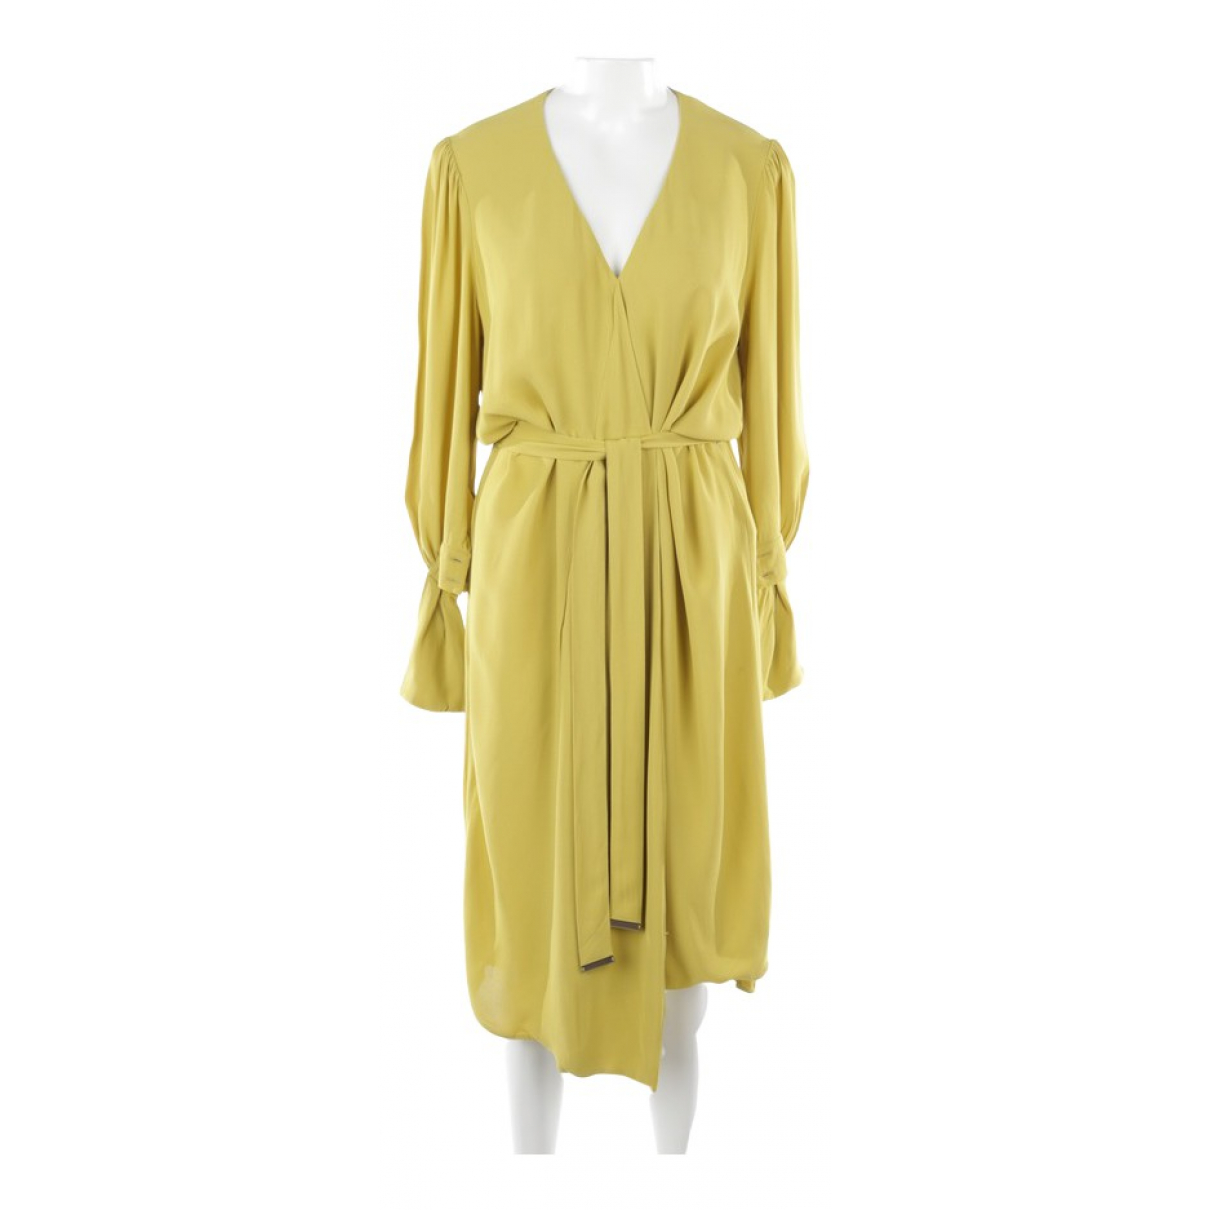 Elisabetta Franchi \N Yellow dress for Women 38 FR